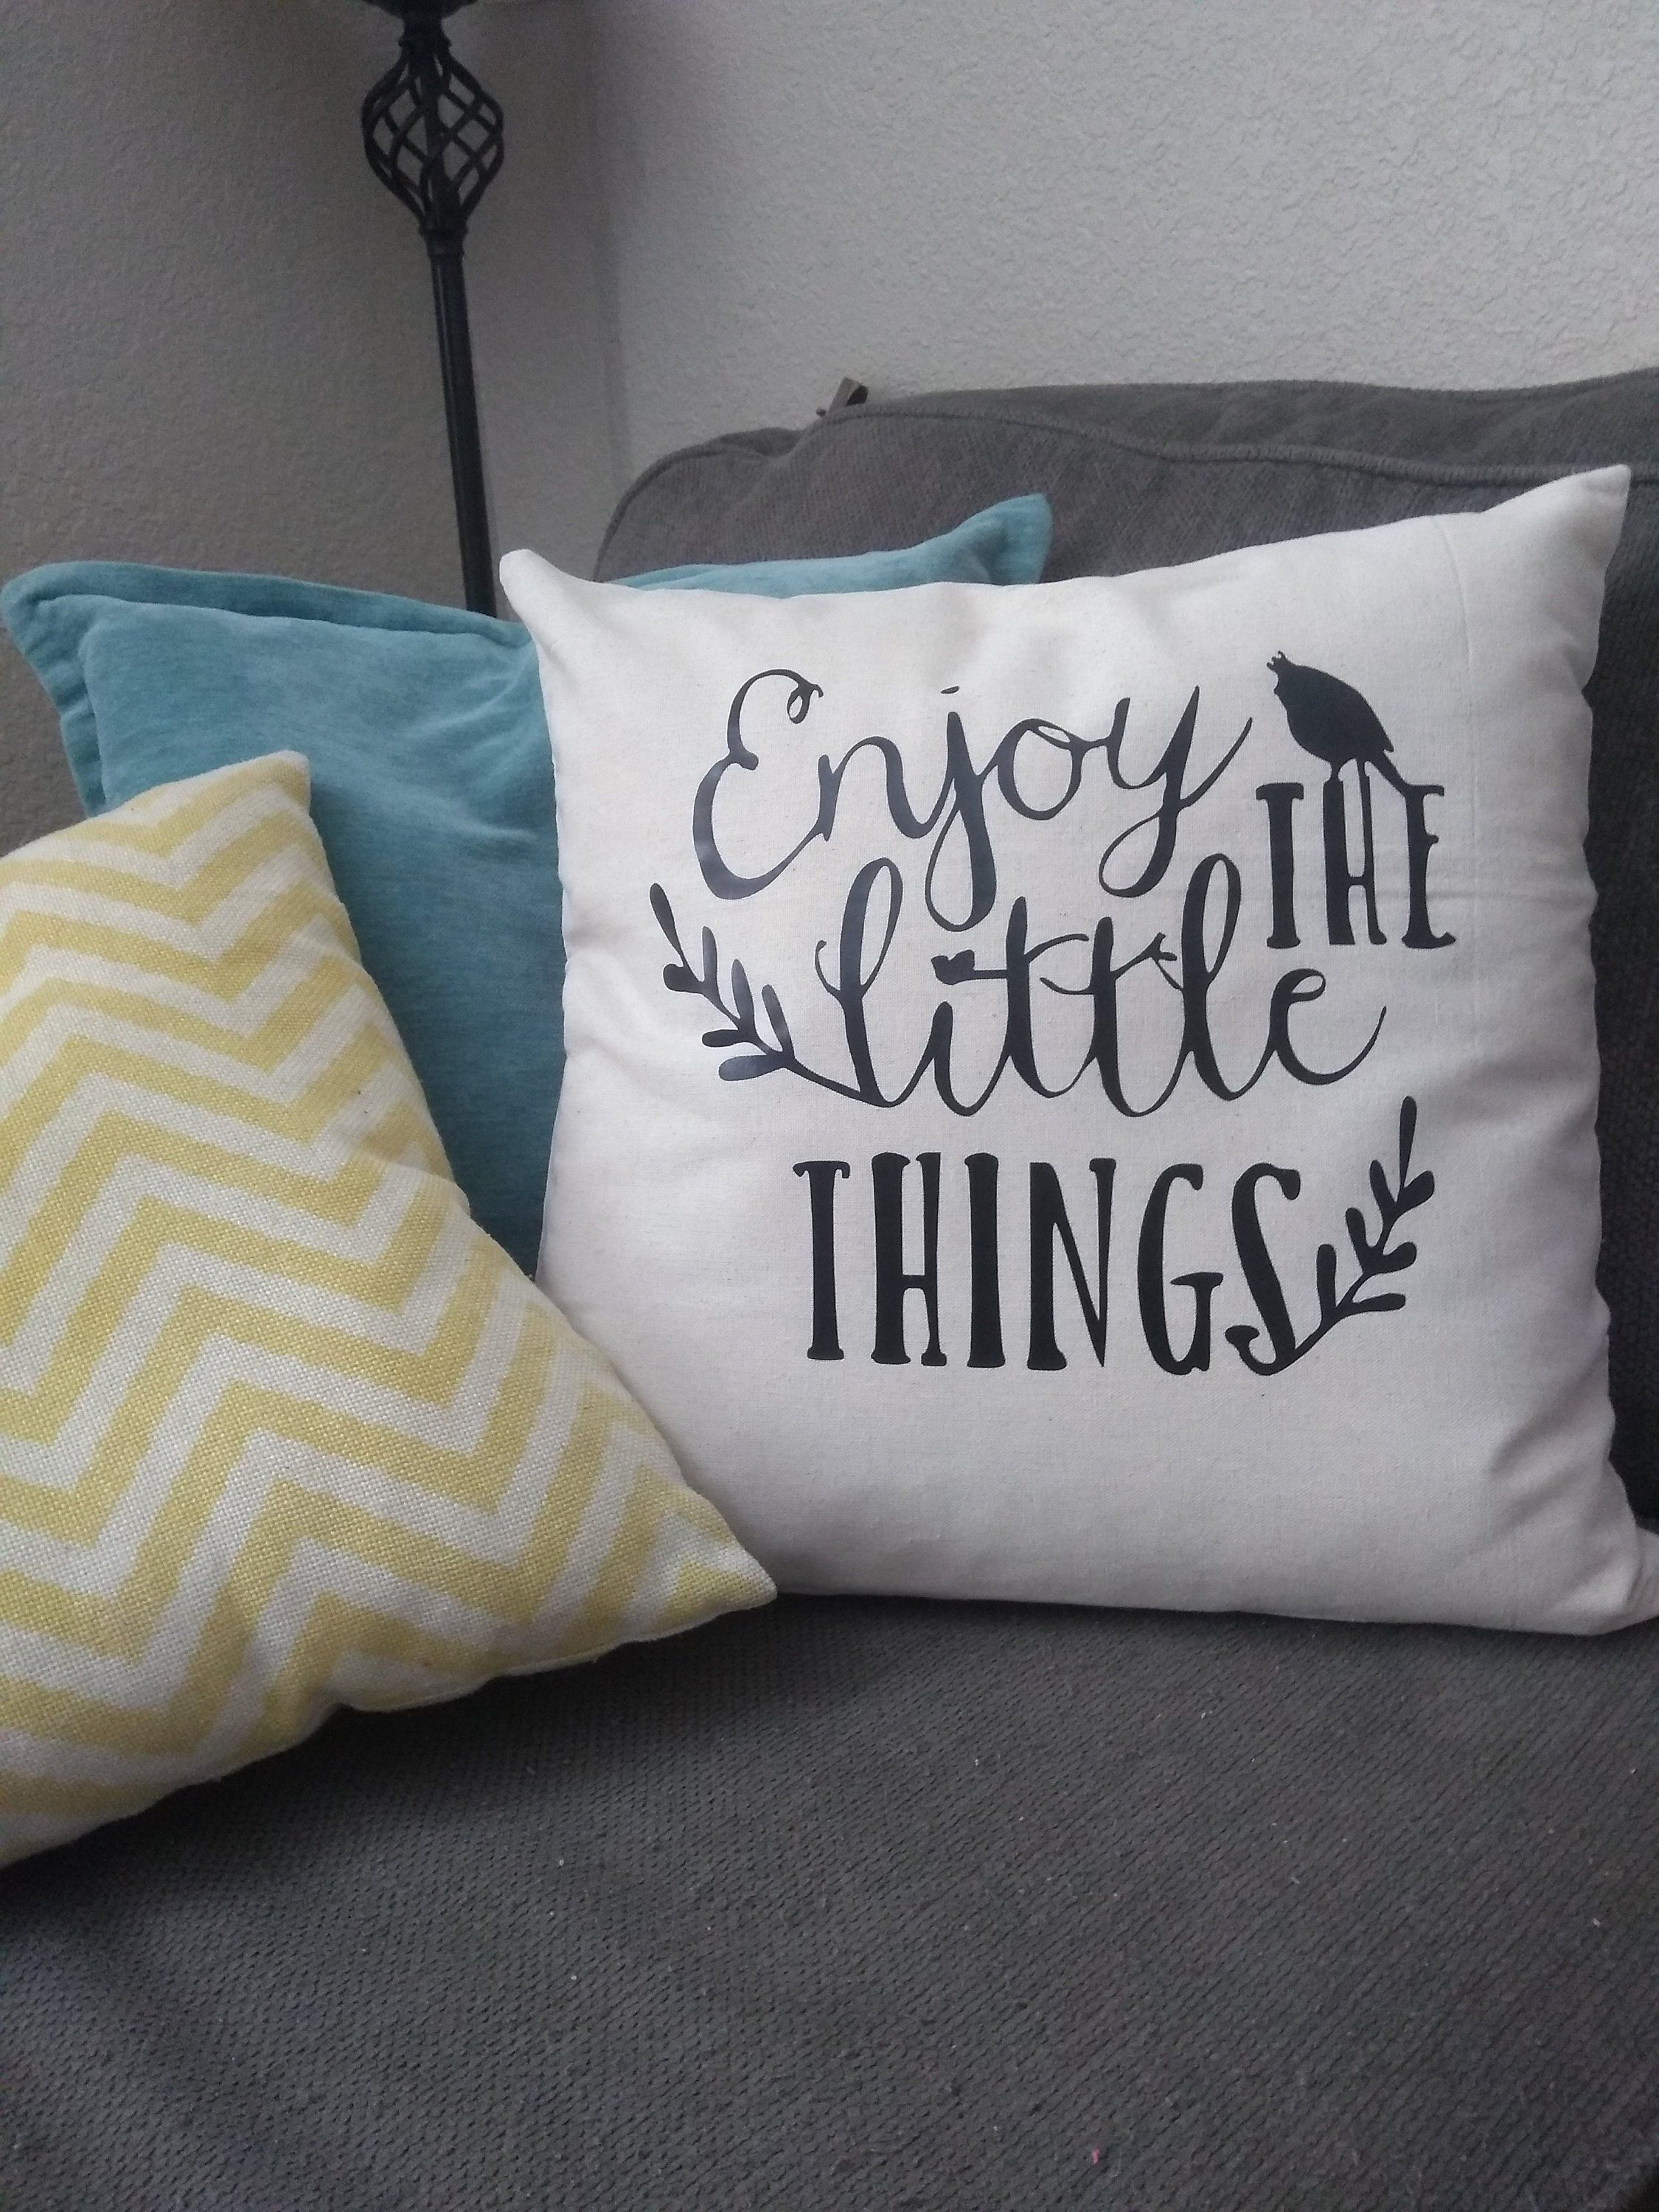 Excited To Share The Latest Addition To My Etsy Shop Enjoy The Little Things Pillow Cover Https Etsy Me 2ennkt Diy Pillow Covers Pillows Etsy Pillow Covers